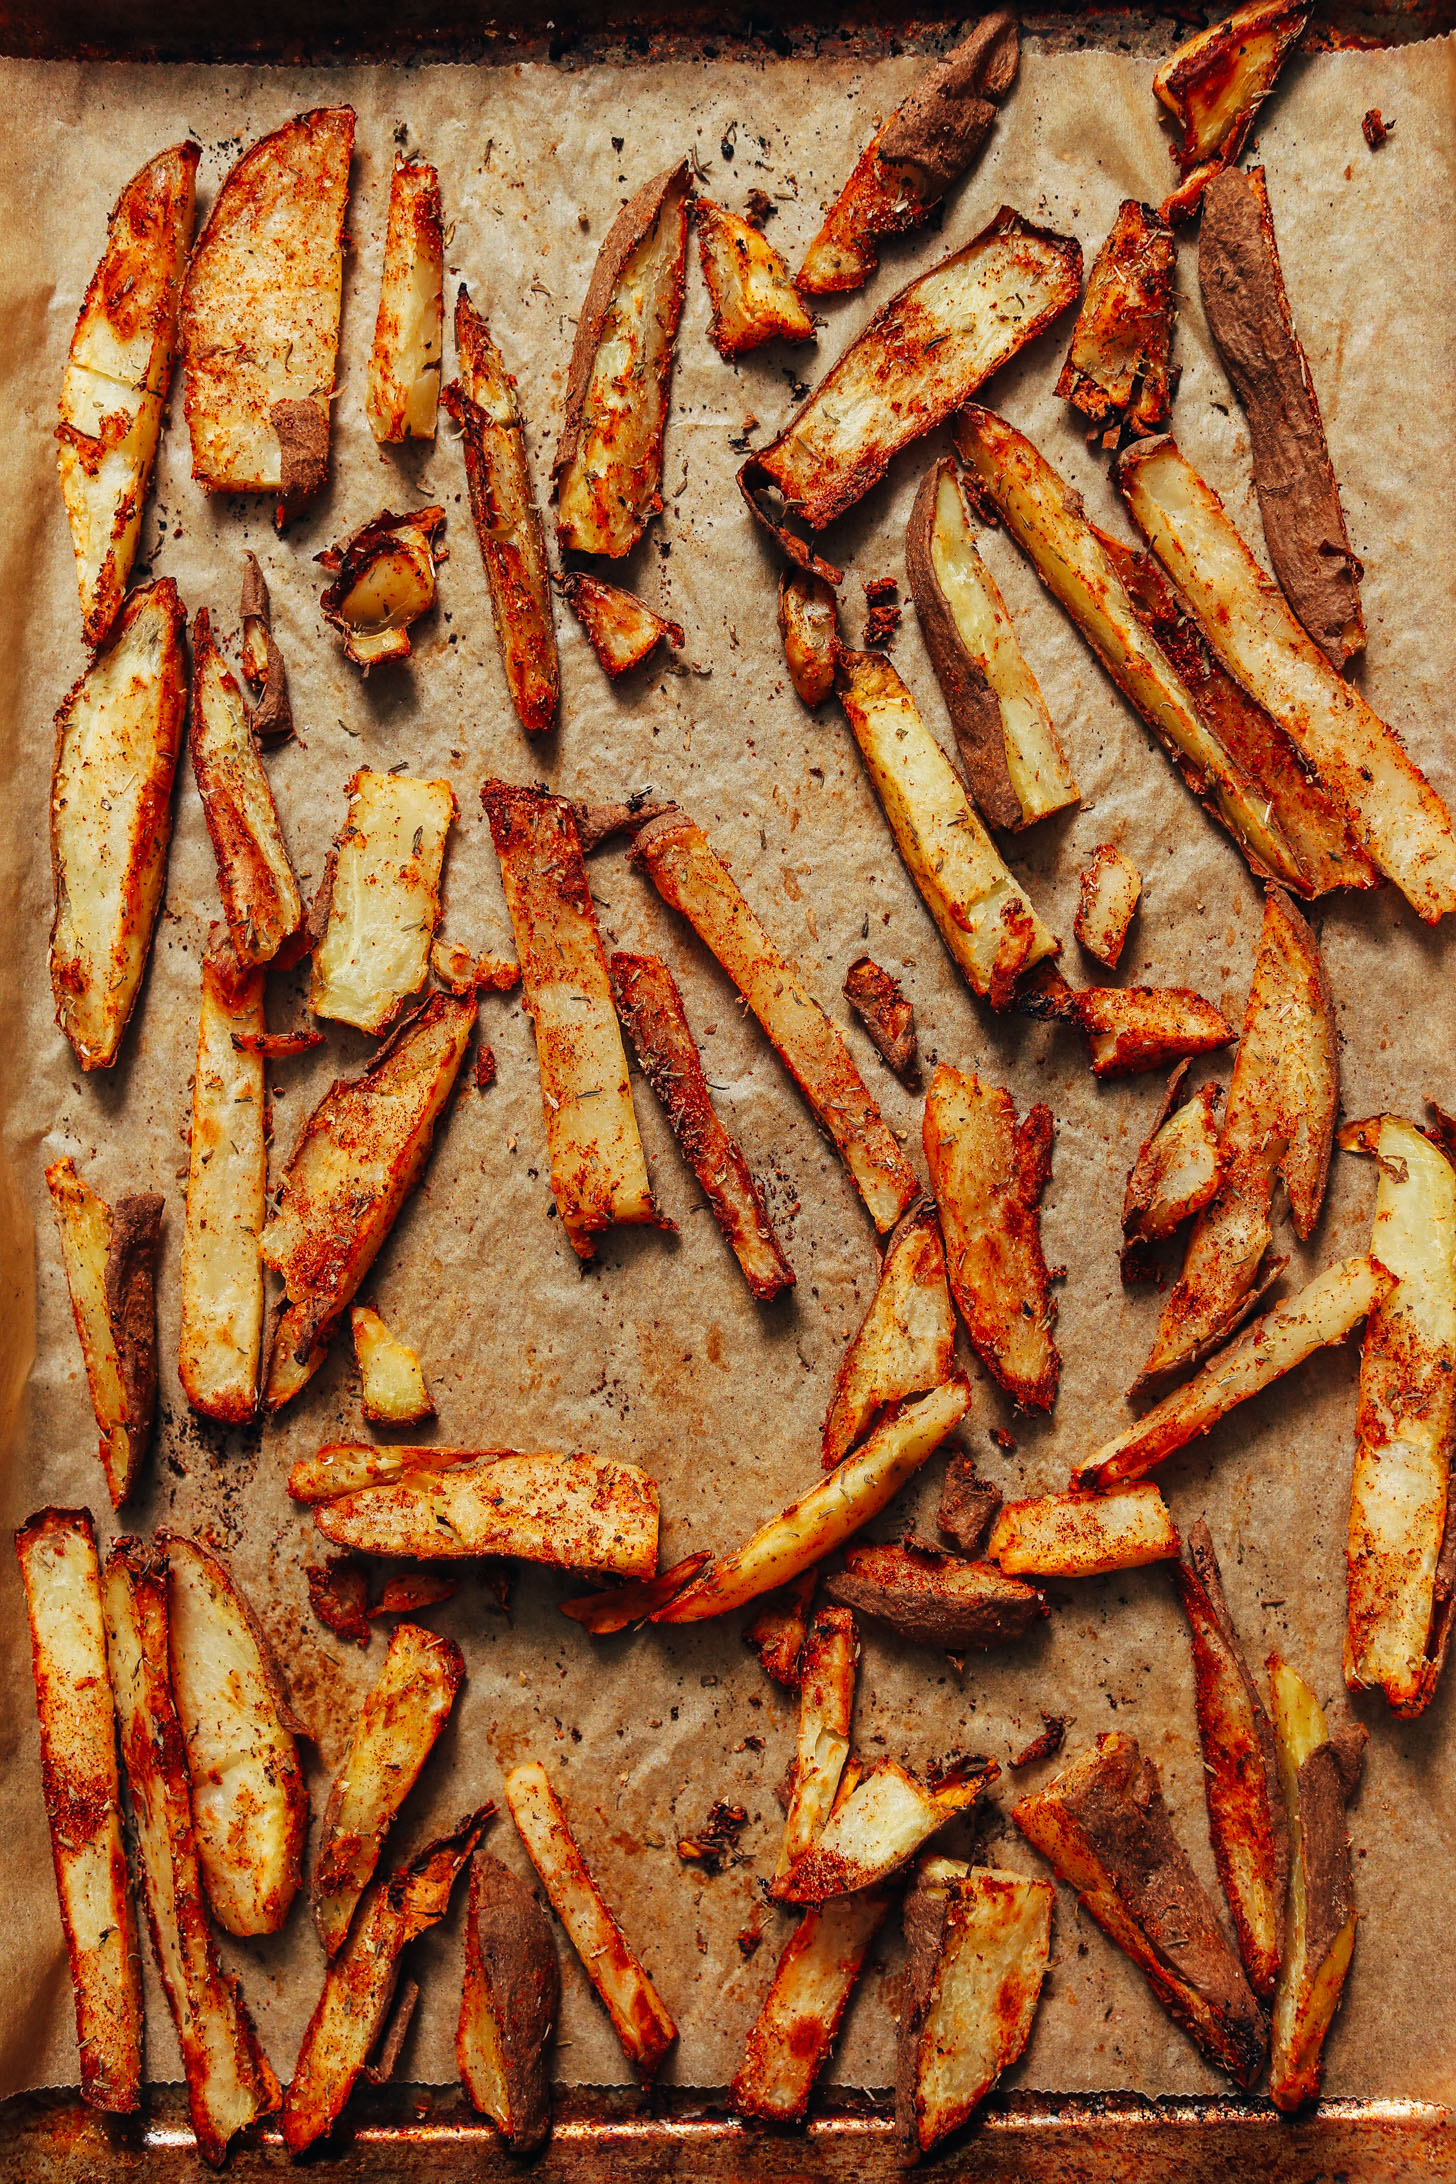 Parchment-lined baking sheet of oil-free fries with cajun seasonings